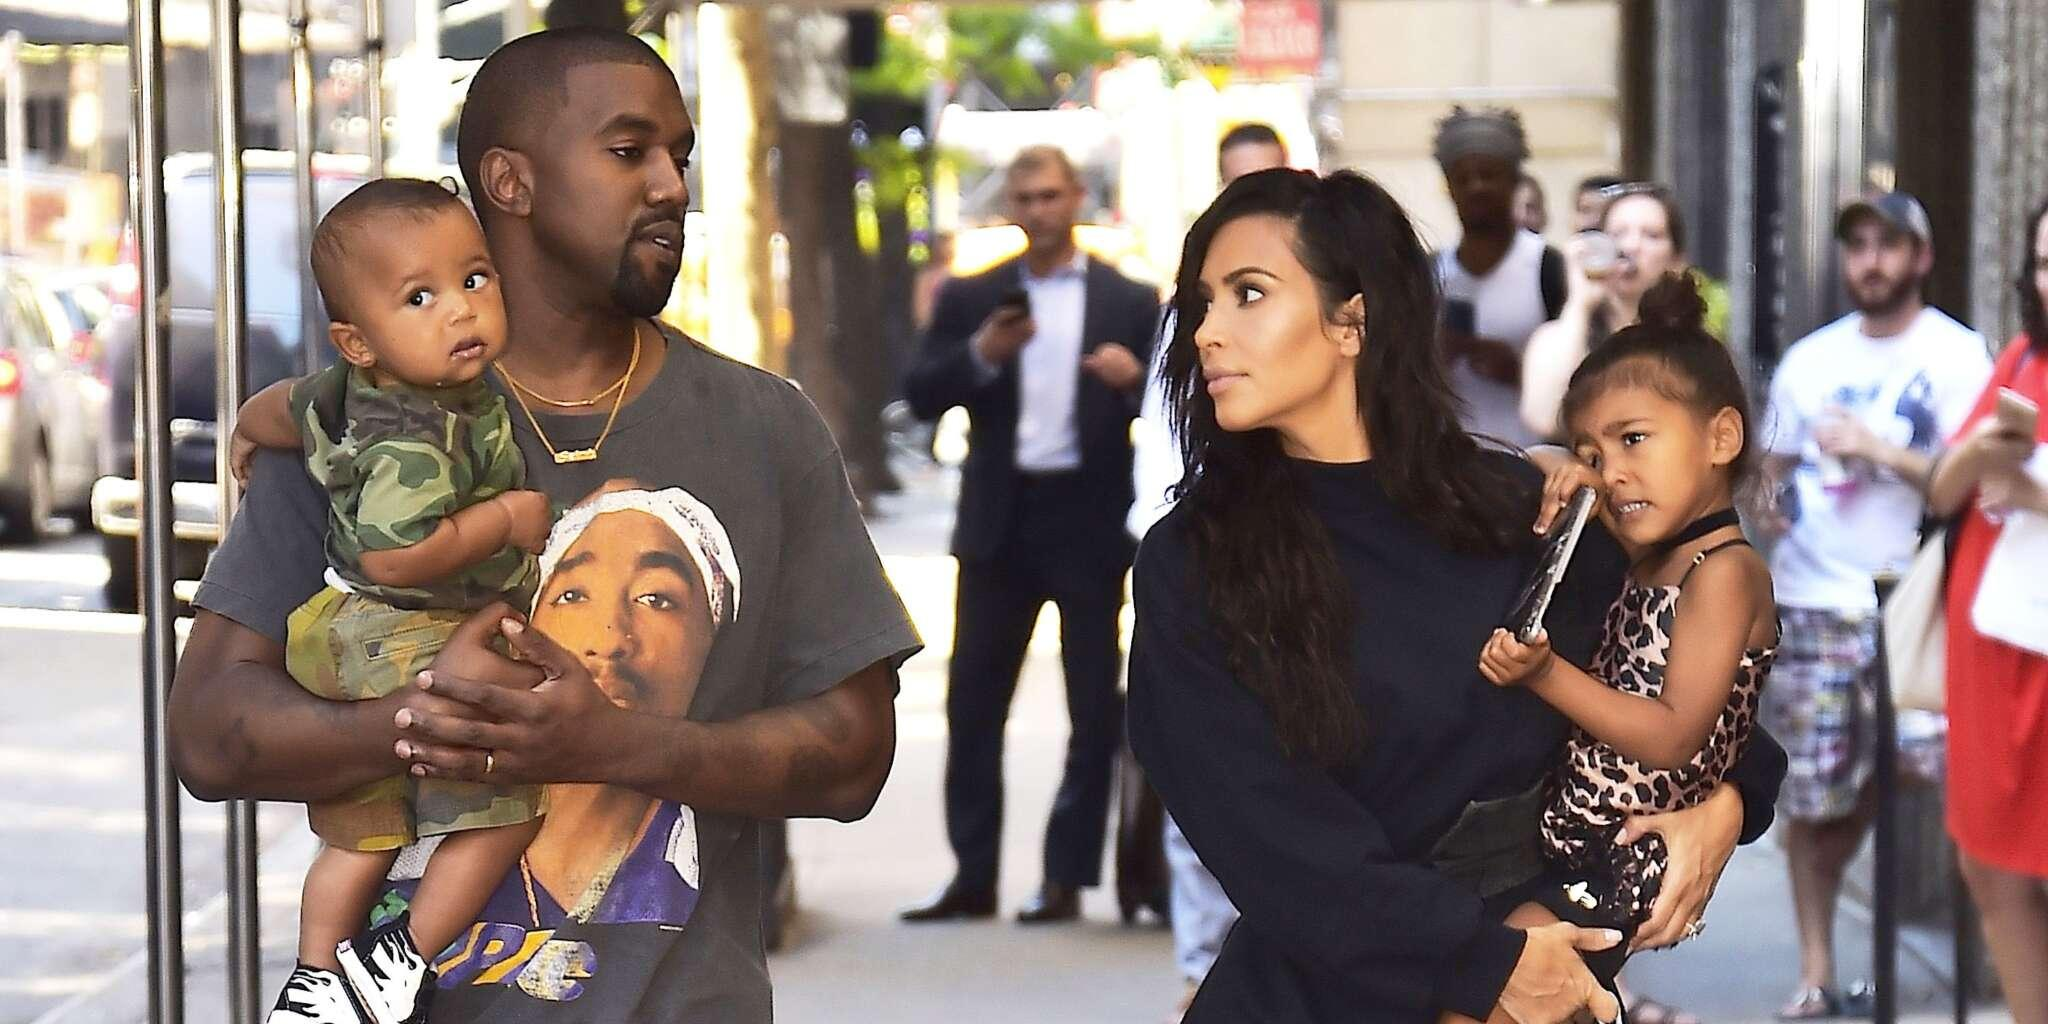 KUWTK: Kim Kardashian And Kanye West Don't Want To File For Divorce For Different Reasons!